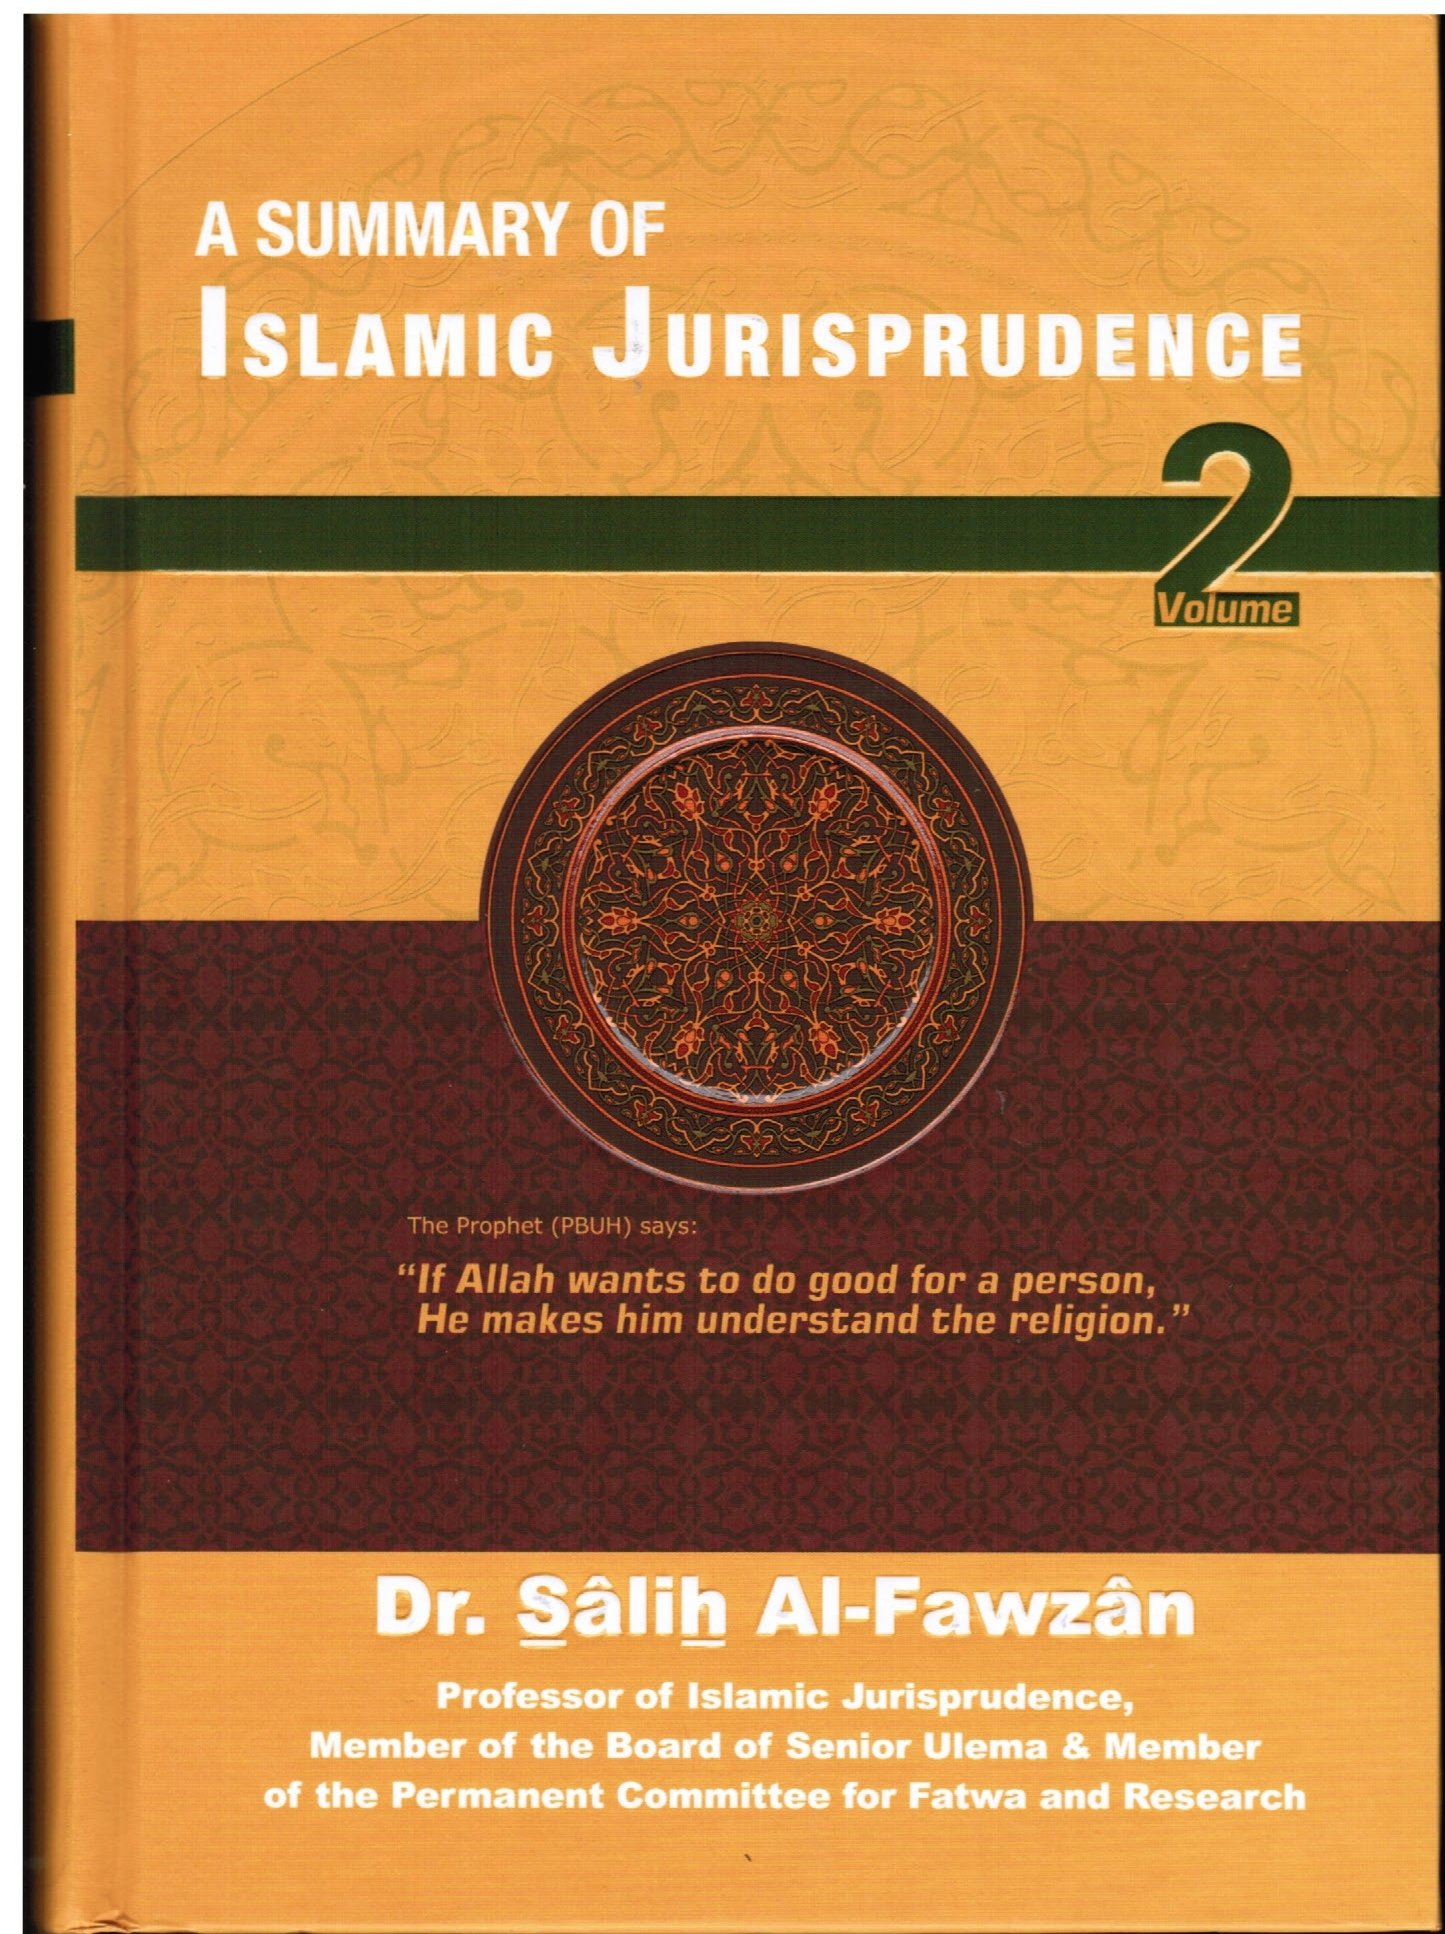 A Summary of Islamic Jurisprudence-Volume 2